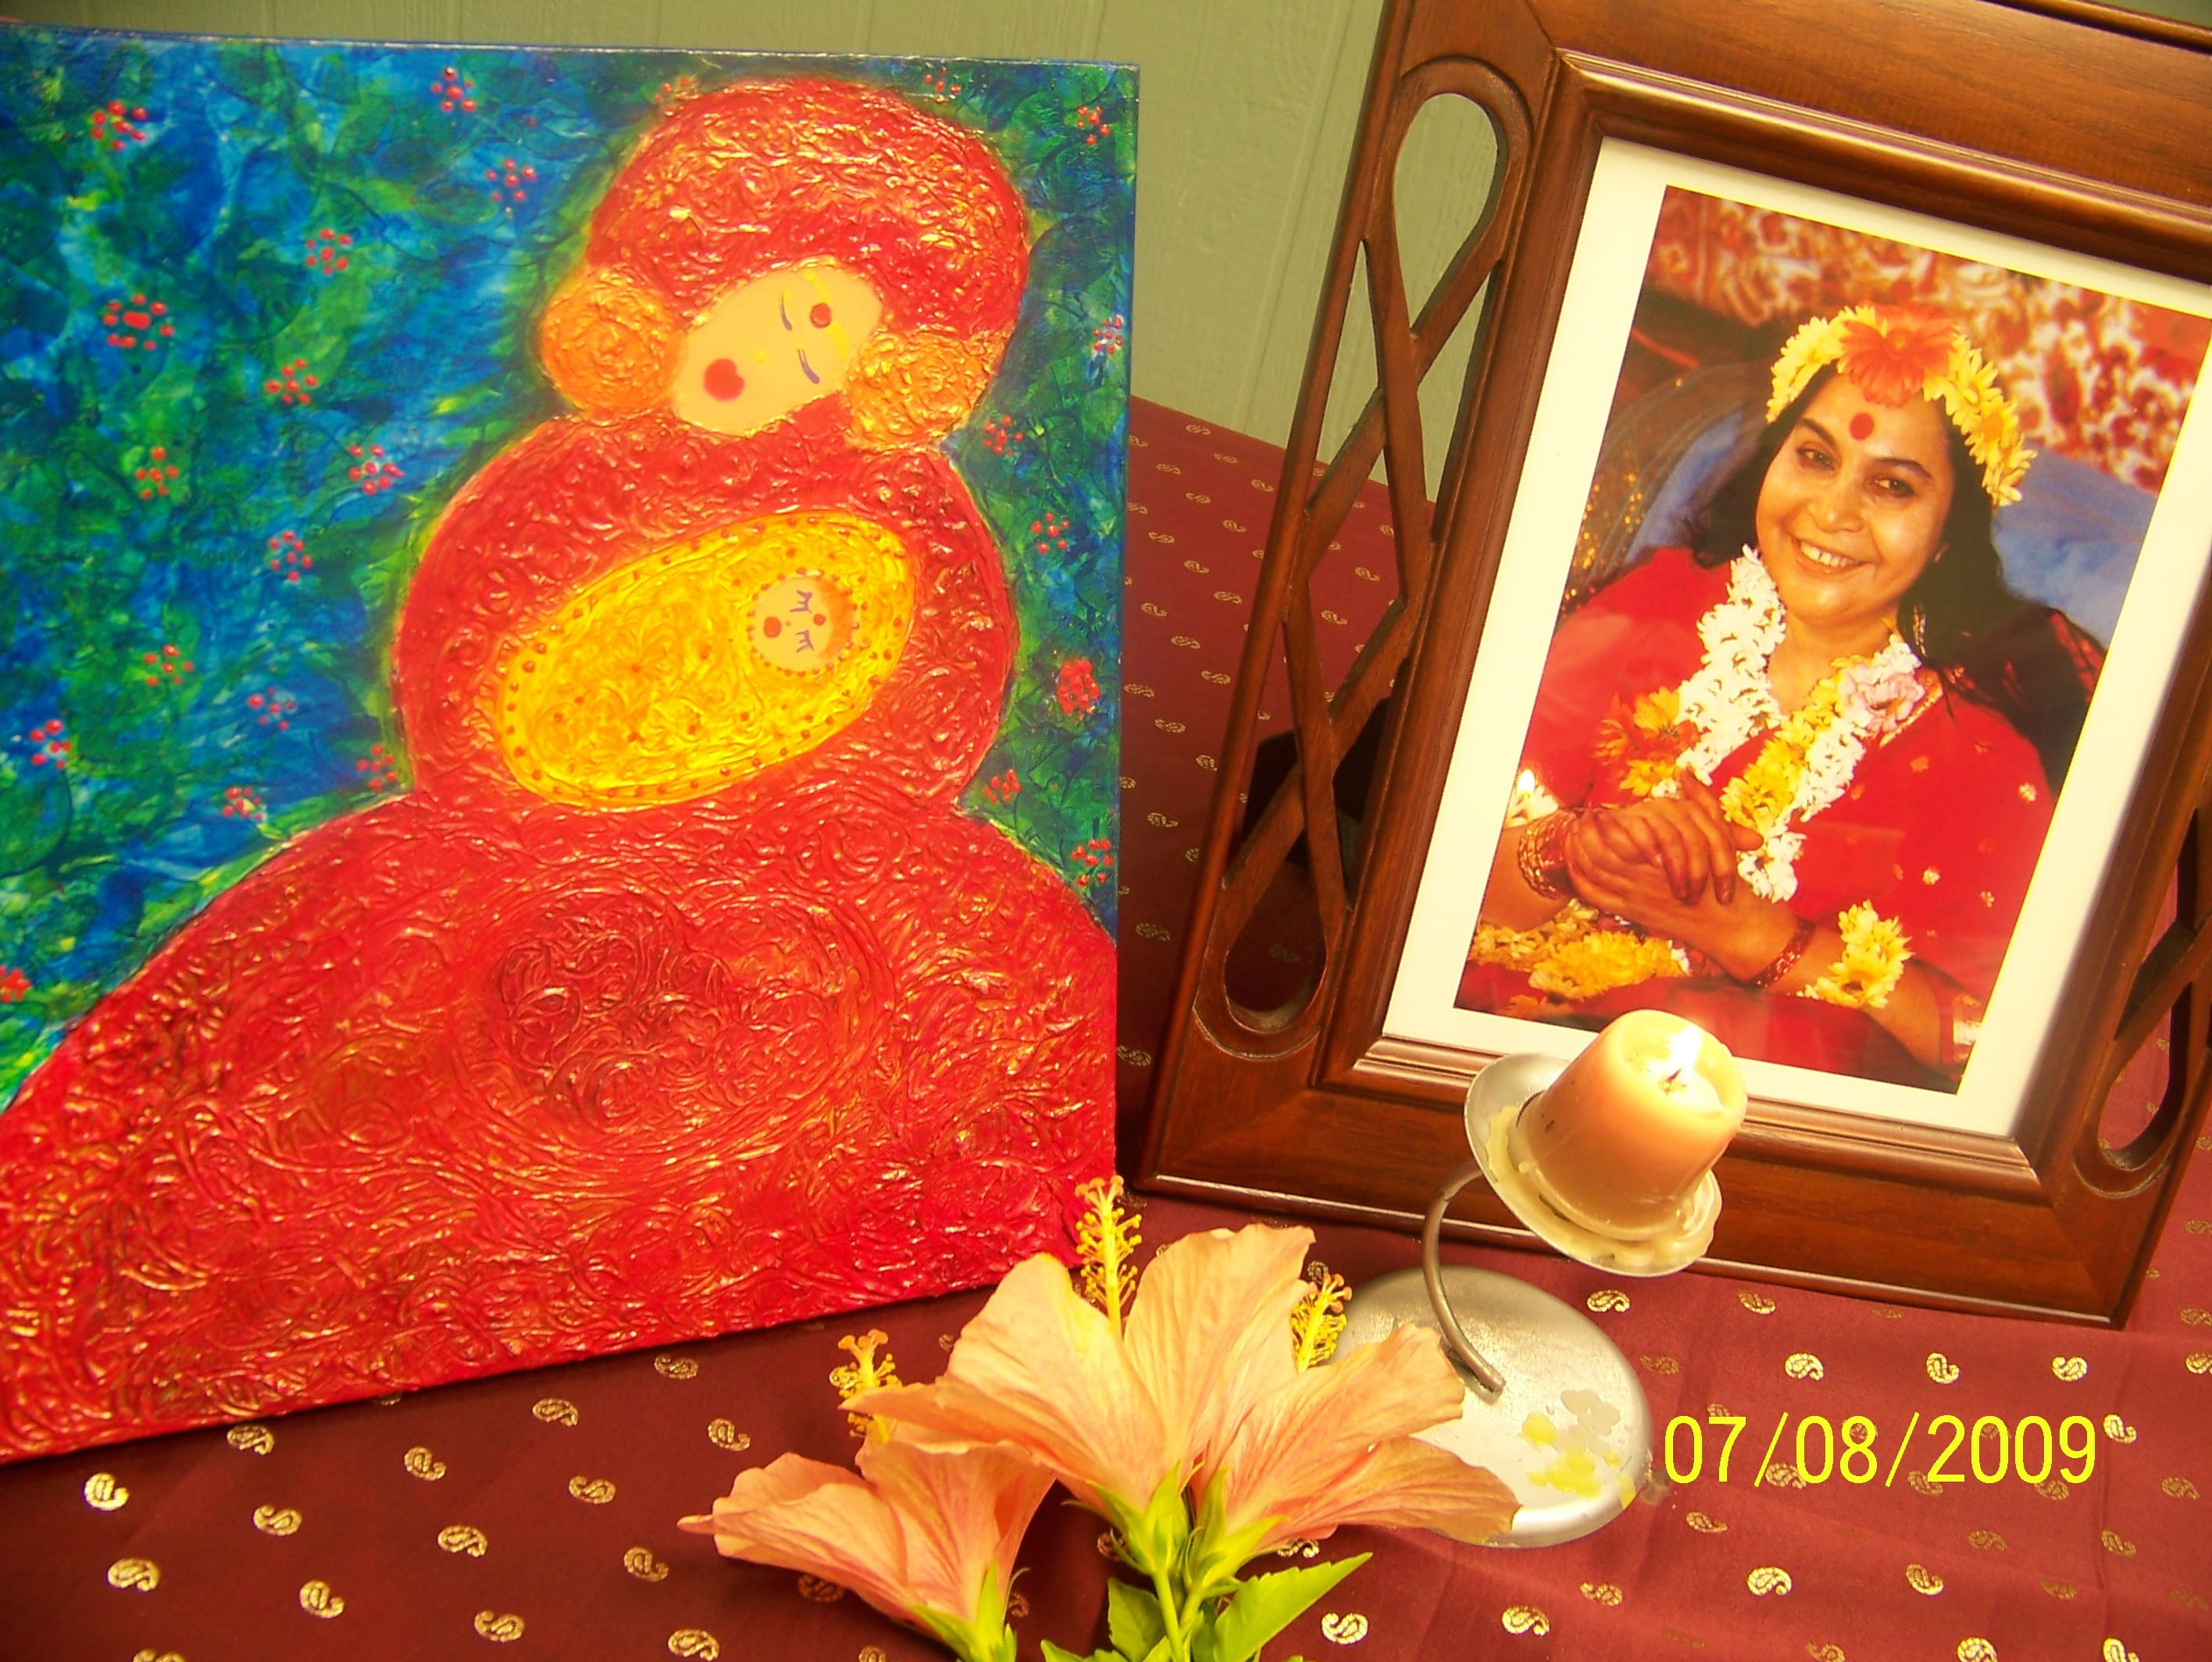 Mother and Child - Madeleine's Painting inspired and guided by Kundalini (though sahaja yoga meditation)